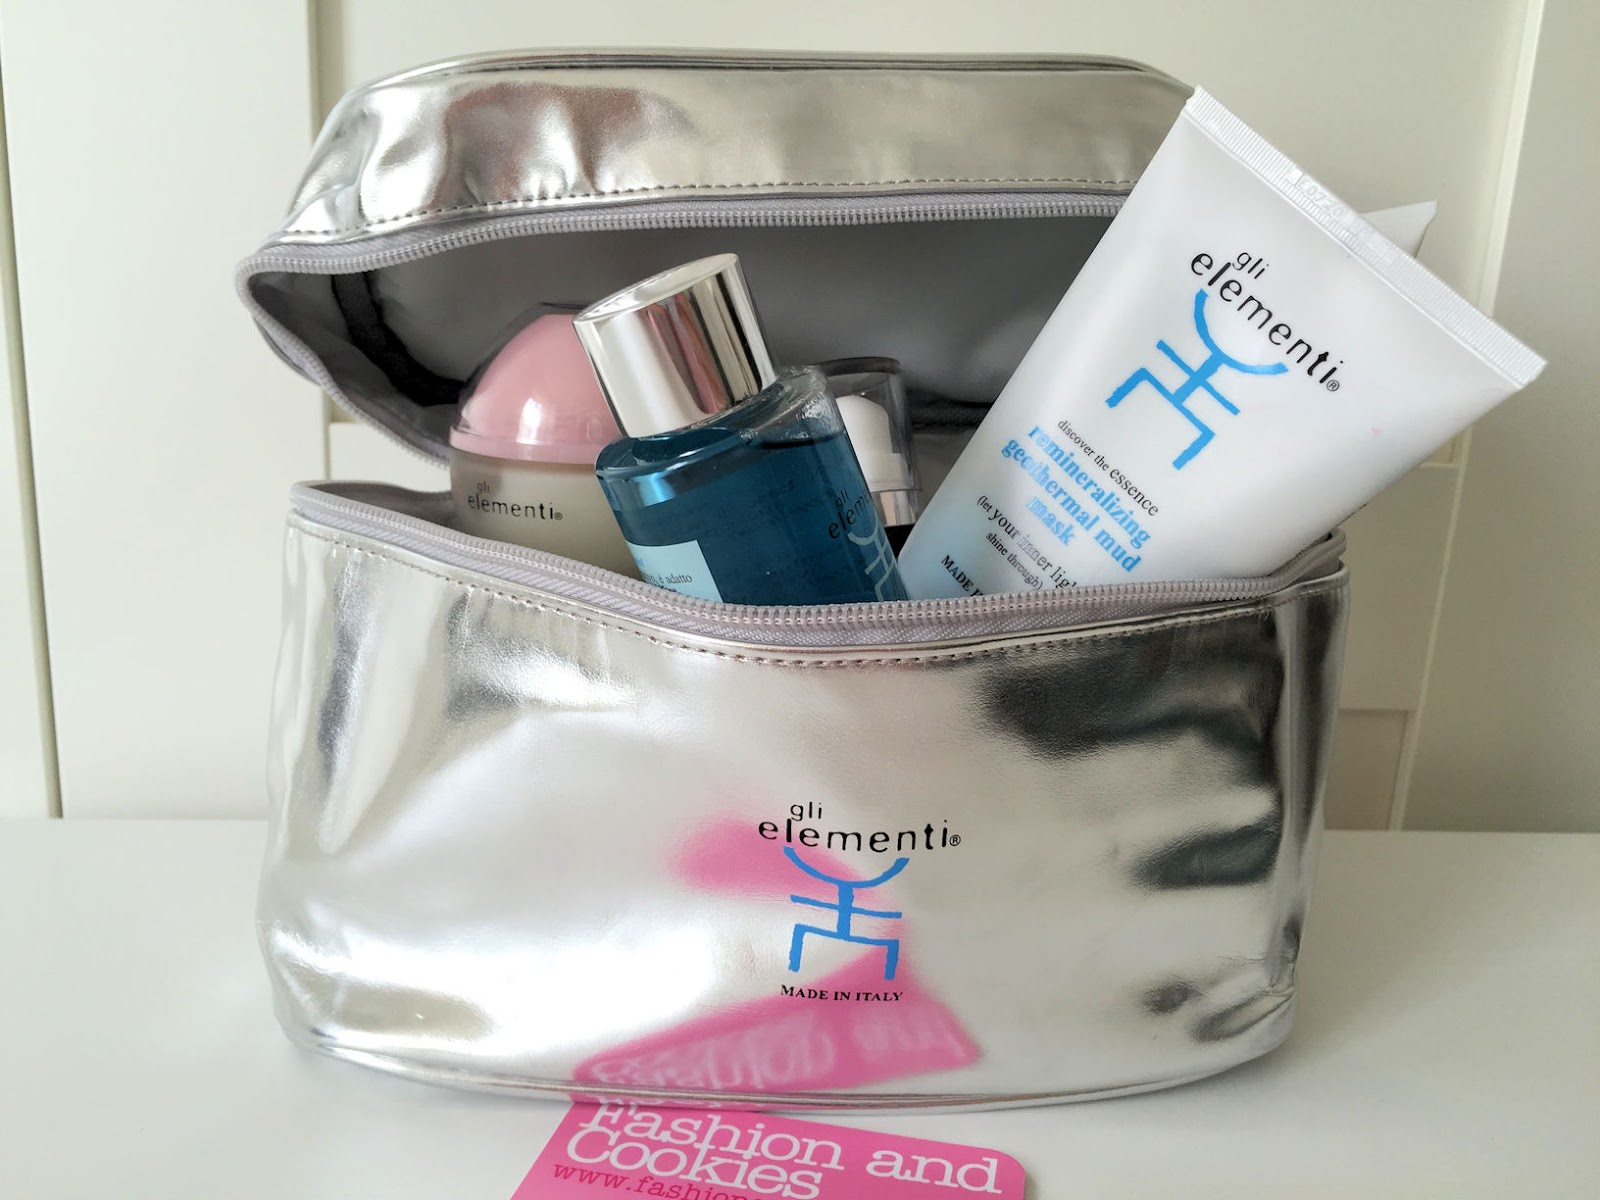 Home SPA secrets: Gli Elementi skincare geothermal cosmetic products on Fashion and Cookies beauty blog, beauty blogger